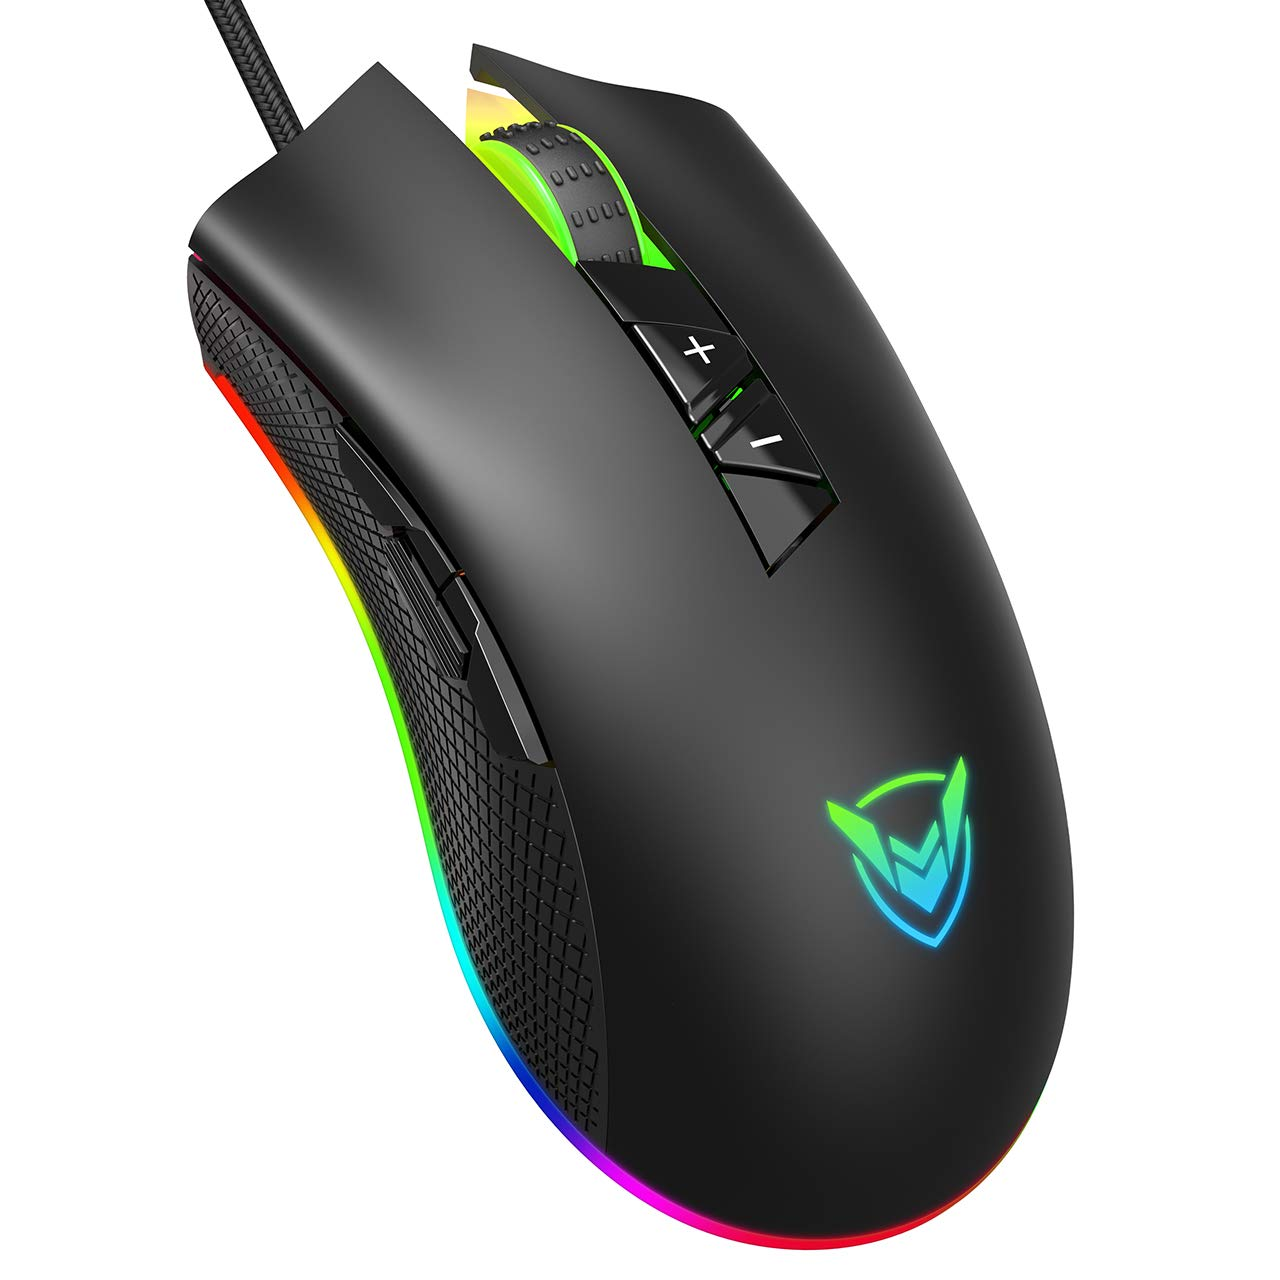 PICTEK Gaming Mouse Wired-Chroma RGB Lighting- High Precision 10,000 DPI Optical Sensor-Programmable Game Mice Design for Average Size Hand, PC Gaming Mouse with Long Braided Cord, Ideal for Pro Gamer